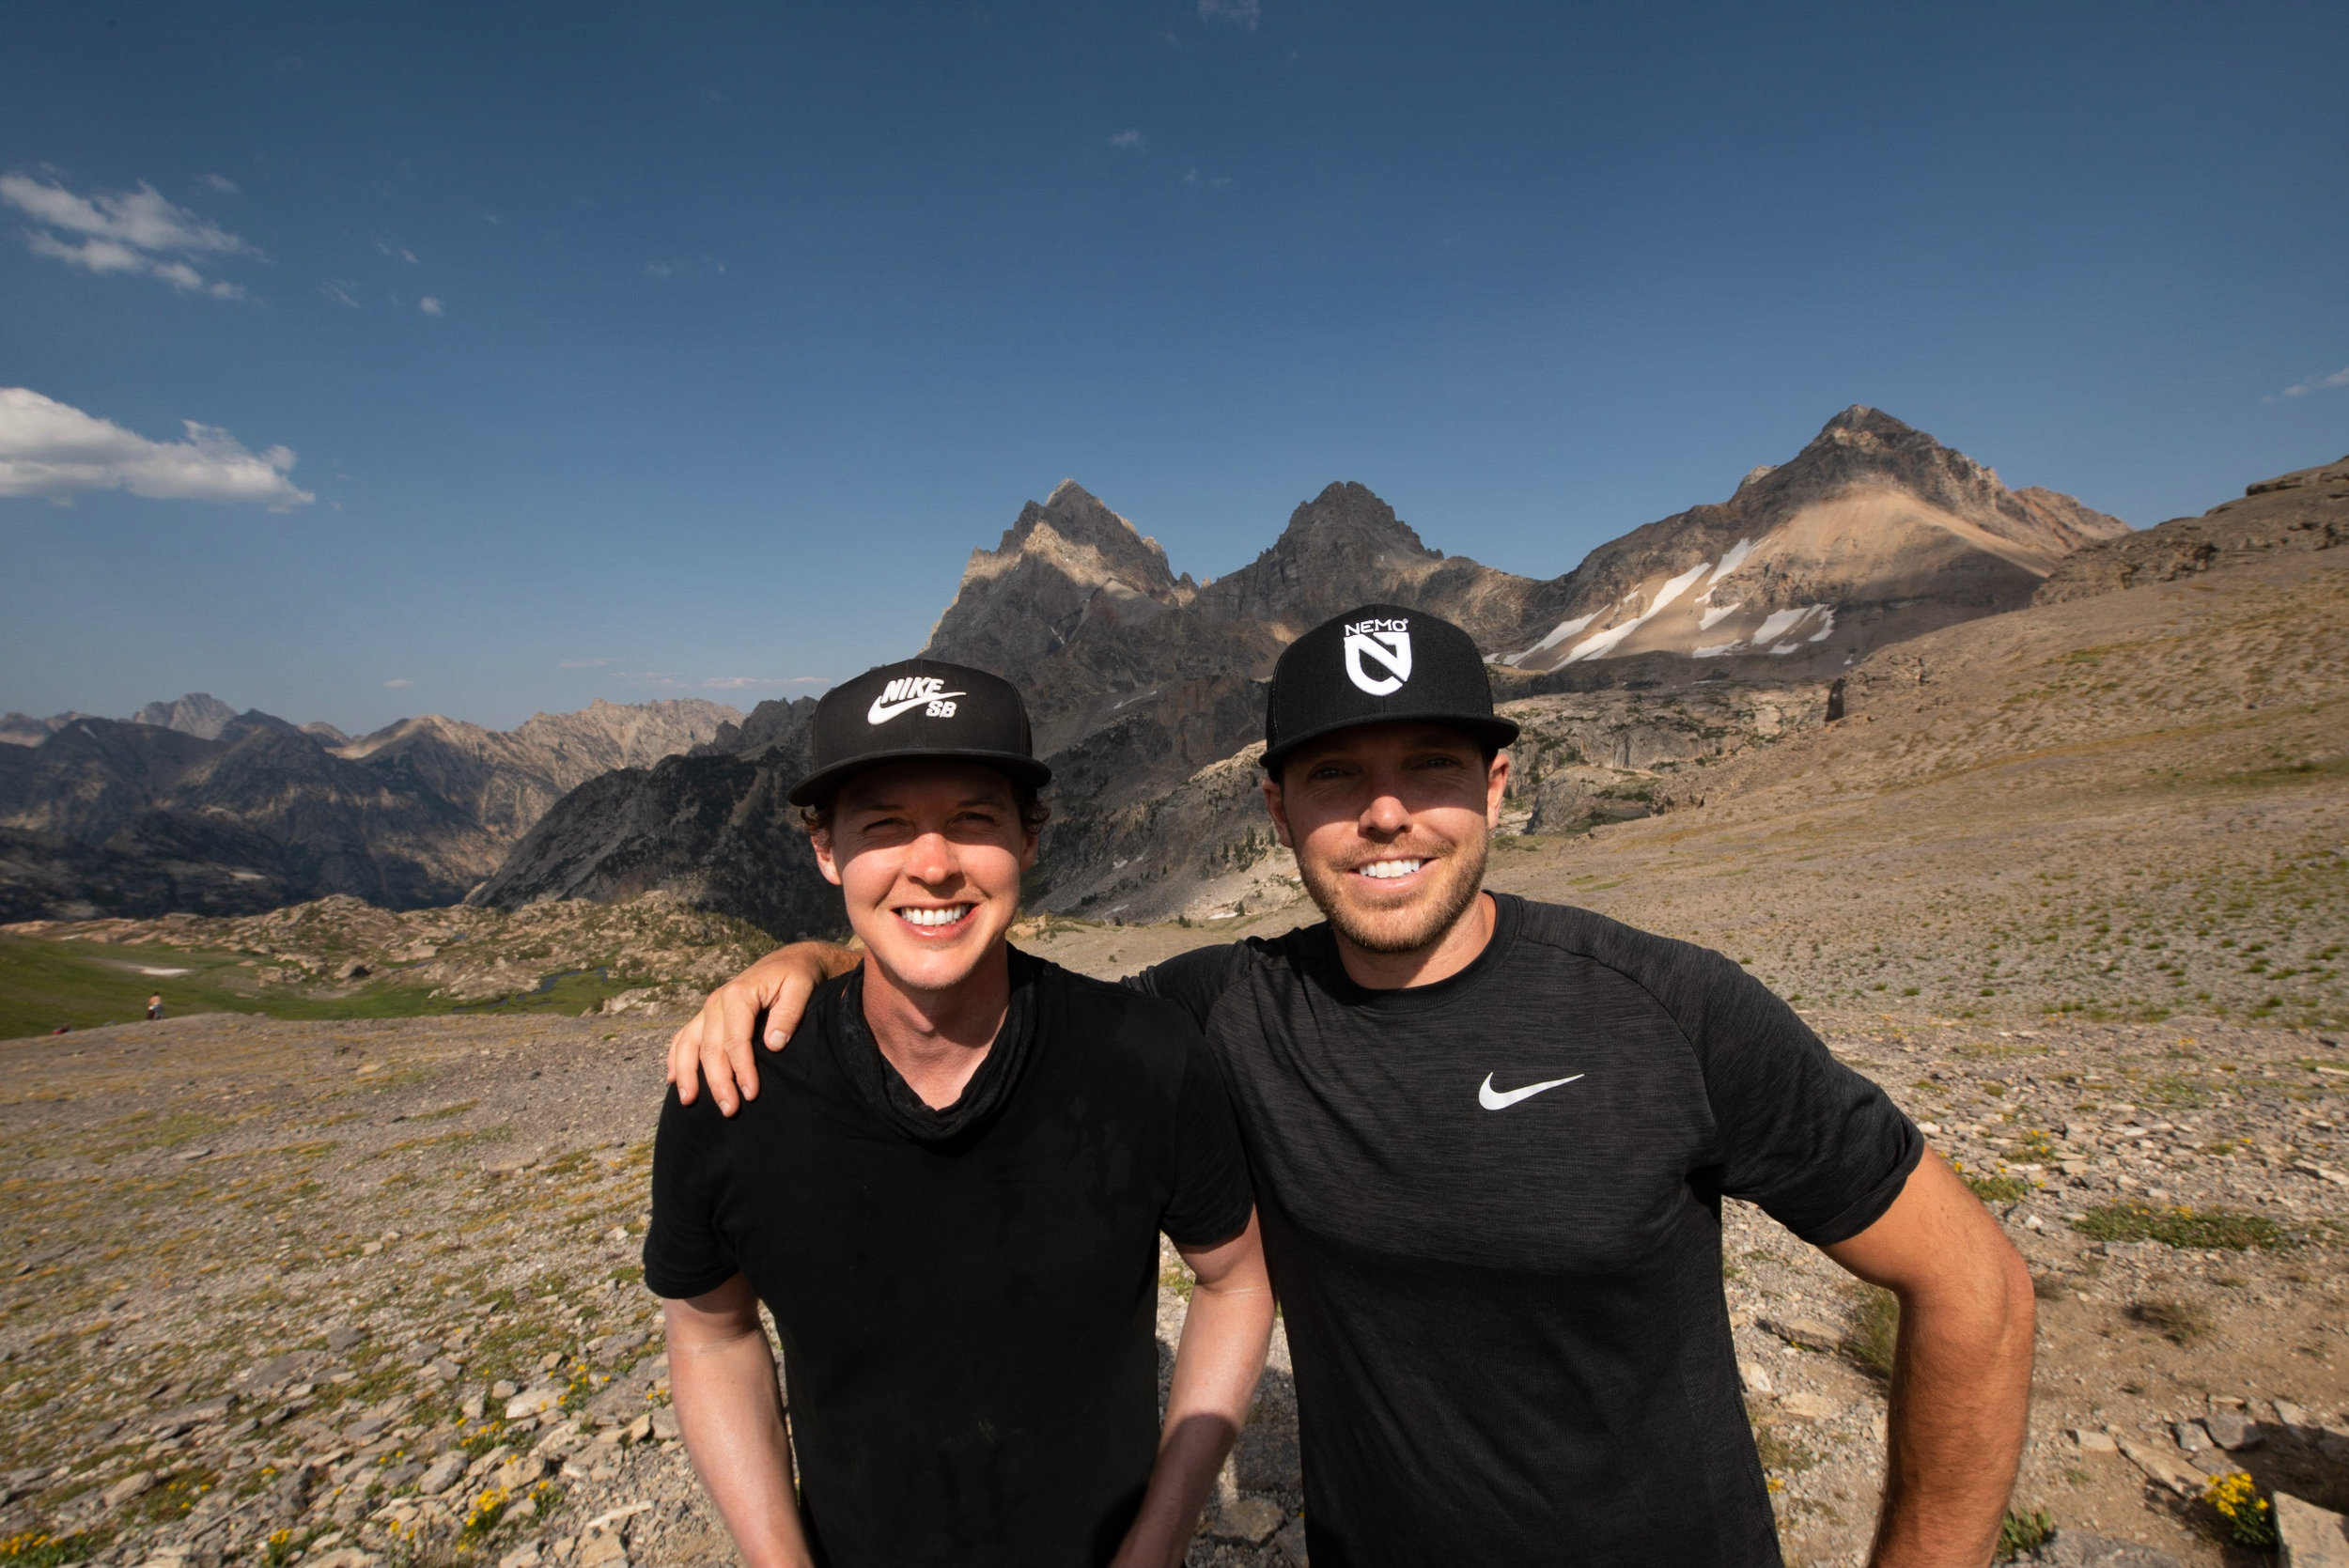 Teton Crest Trail, Wyoming with Nick Reedy